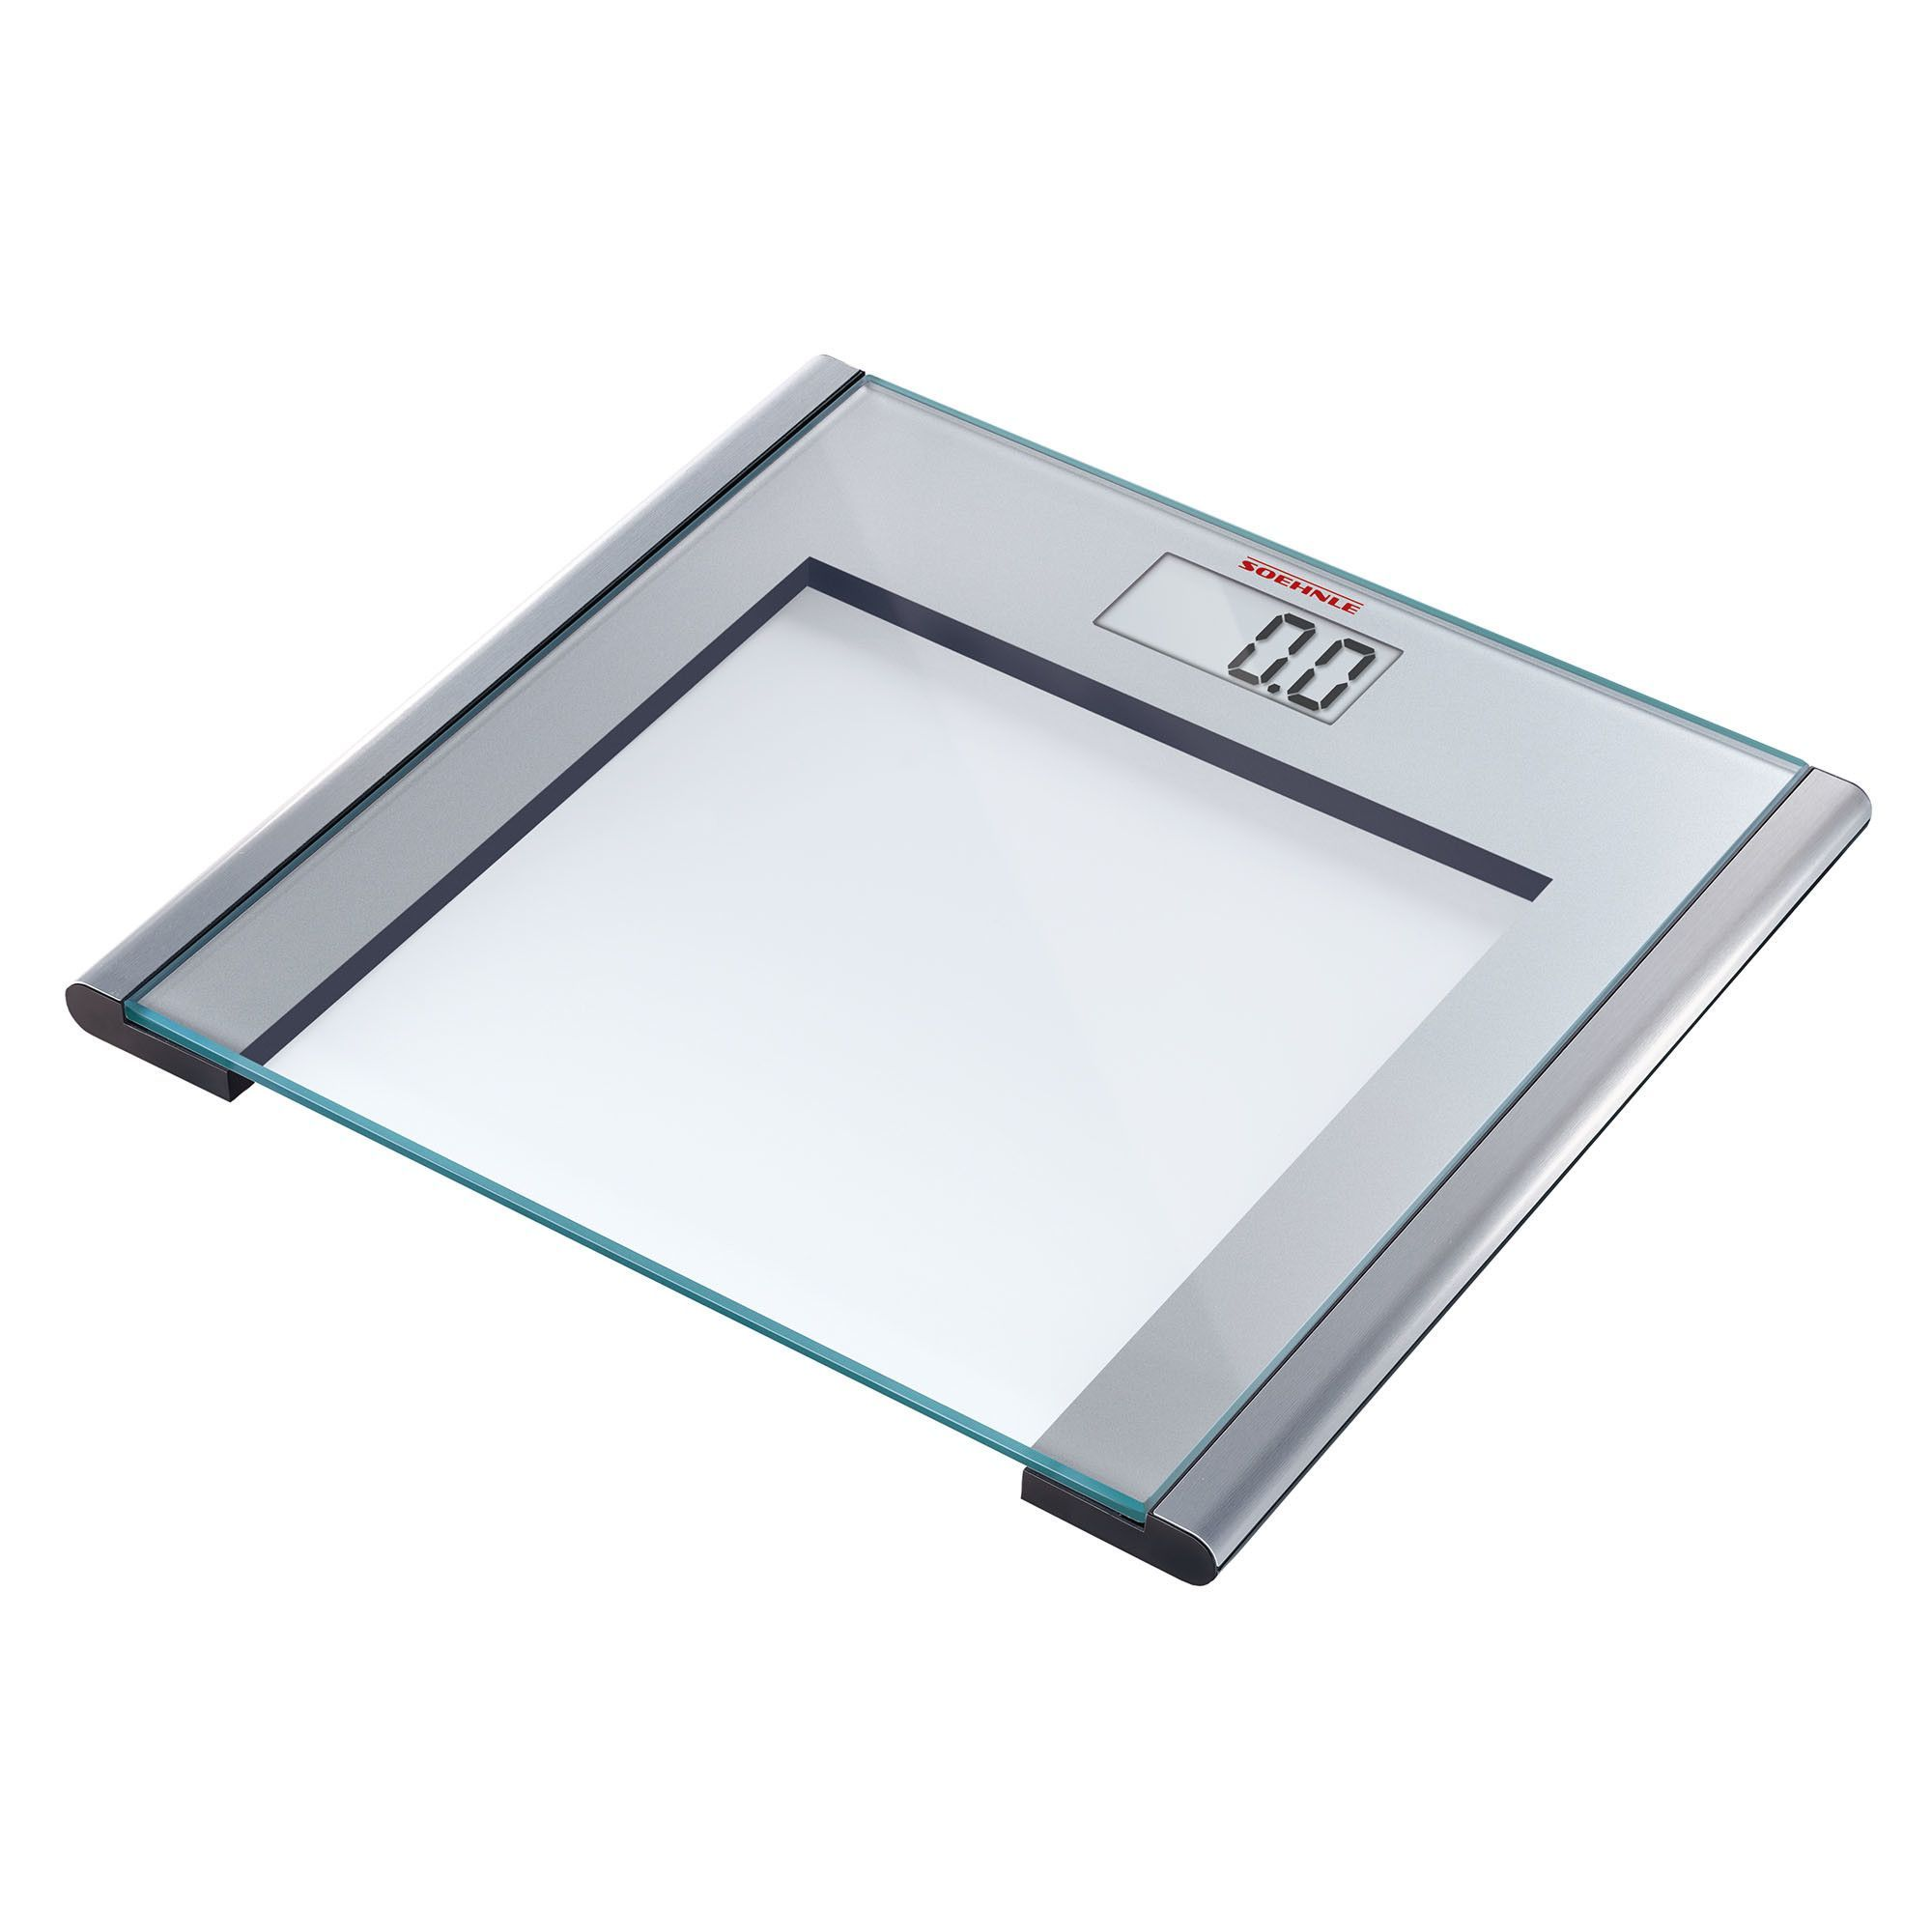 Kmart Bathroom Scales - All About Bathroom